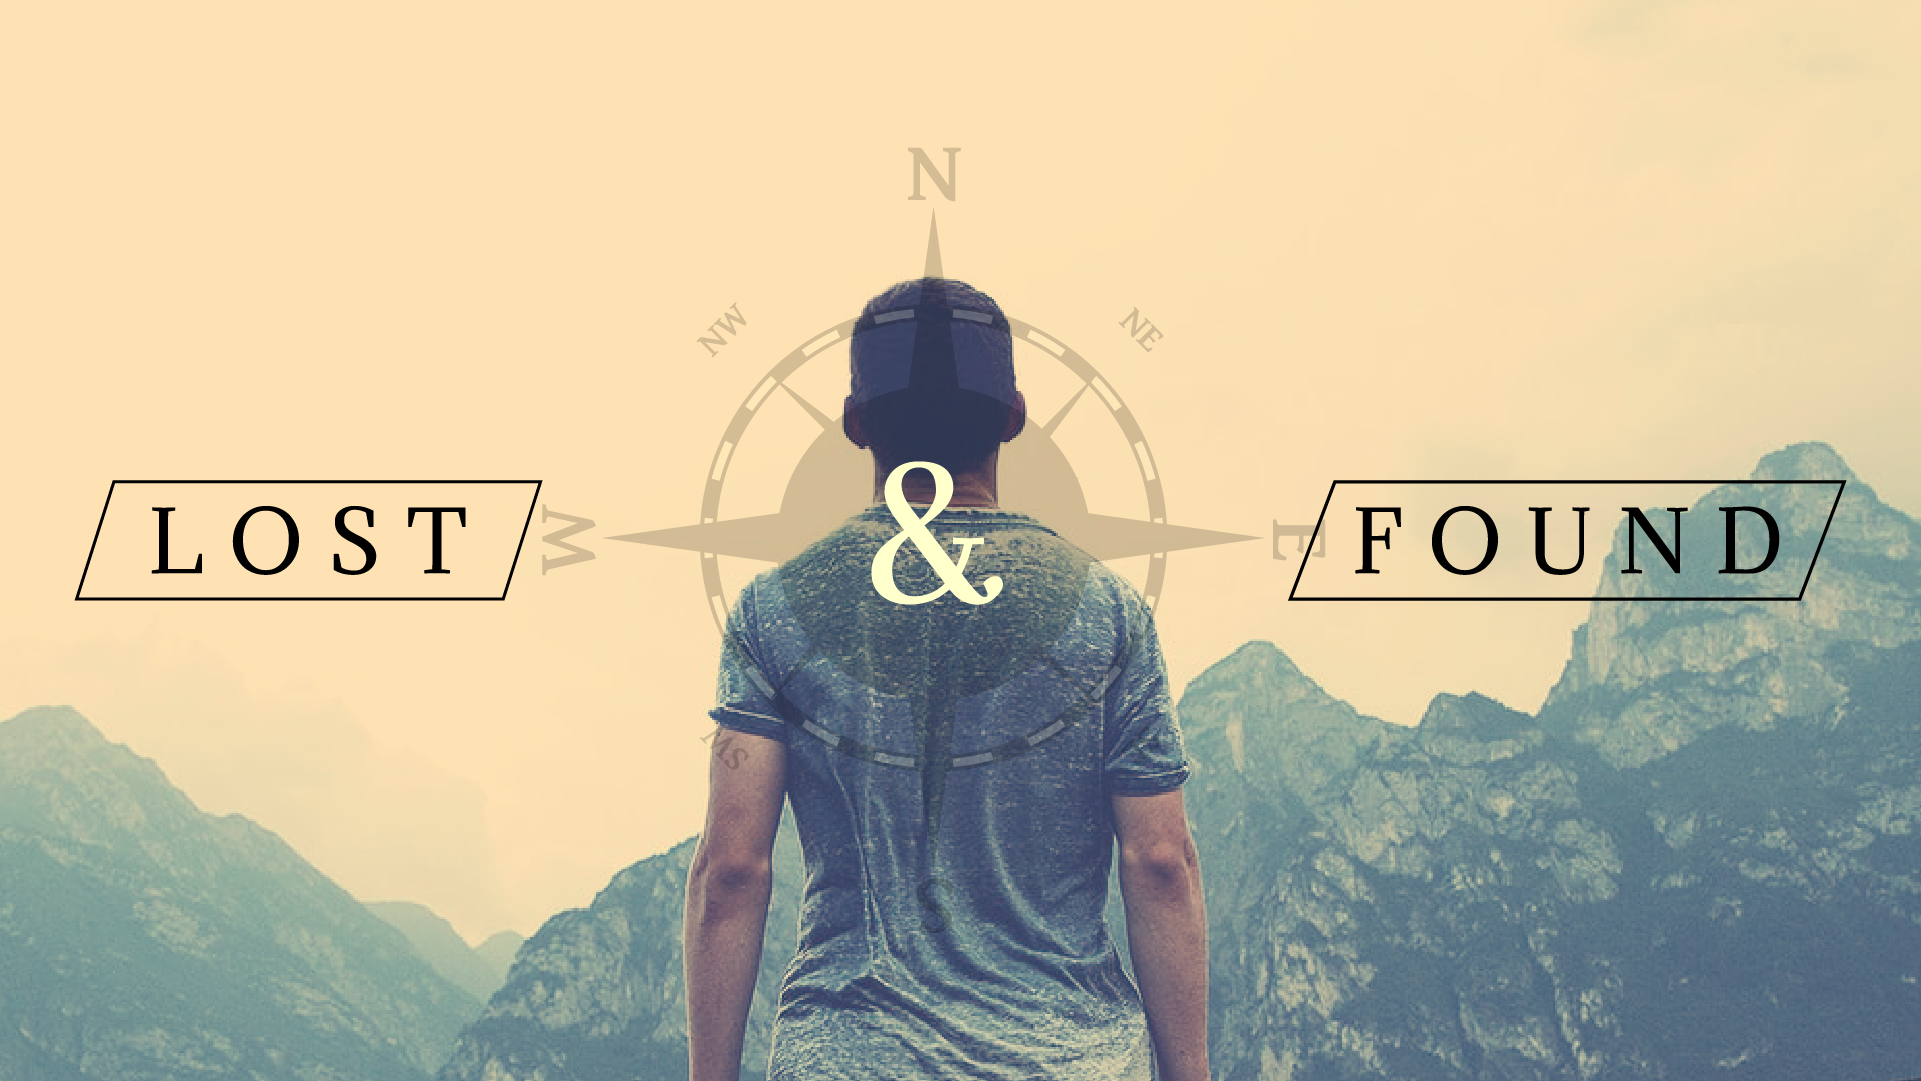 Lost & Found_Sermon Graphics_Side Screen_1920x1080.png